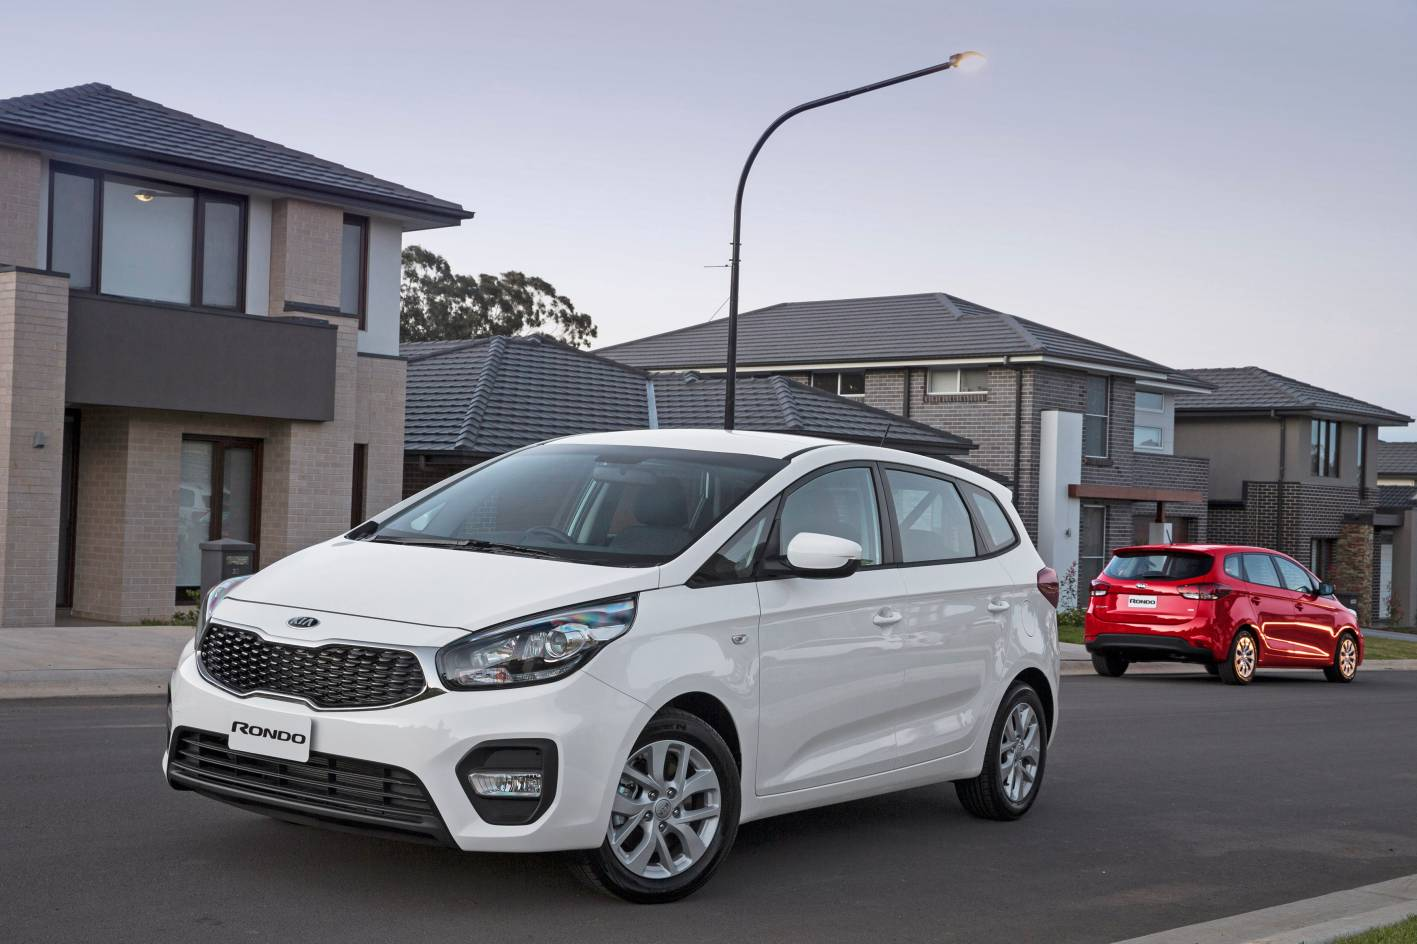 2017 Kia Rondo - Price And Features For Repositioned Australian Model